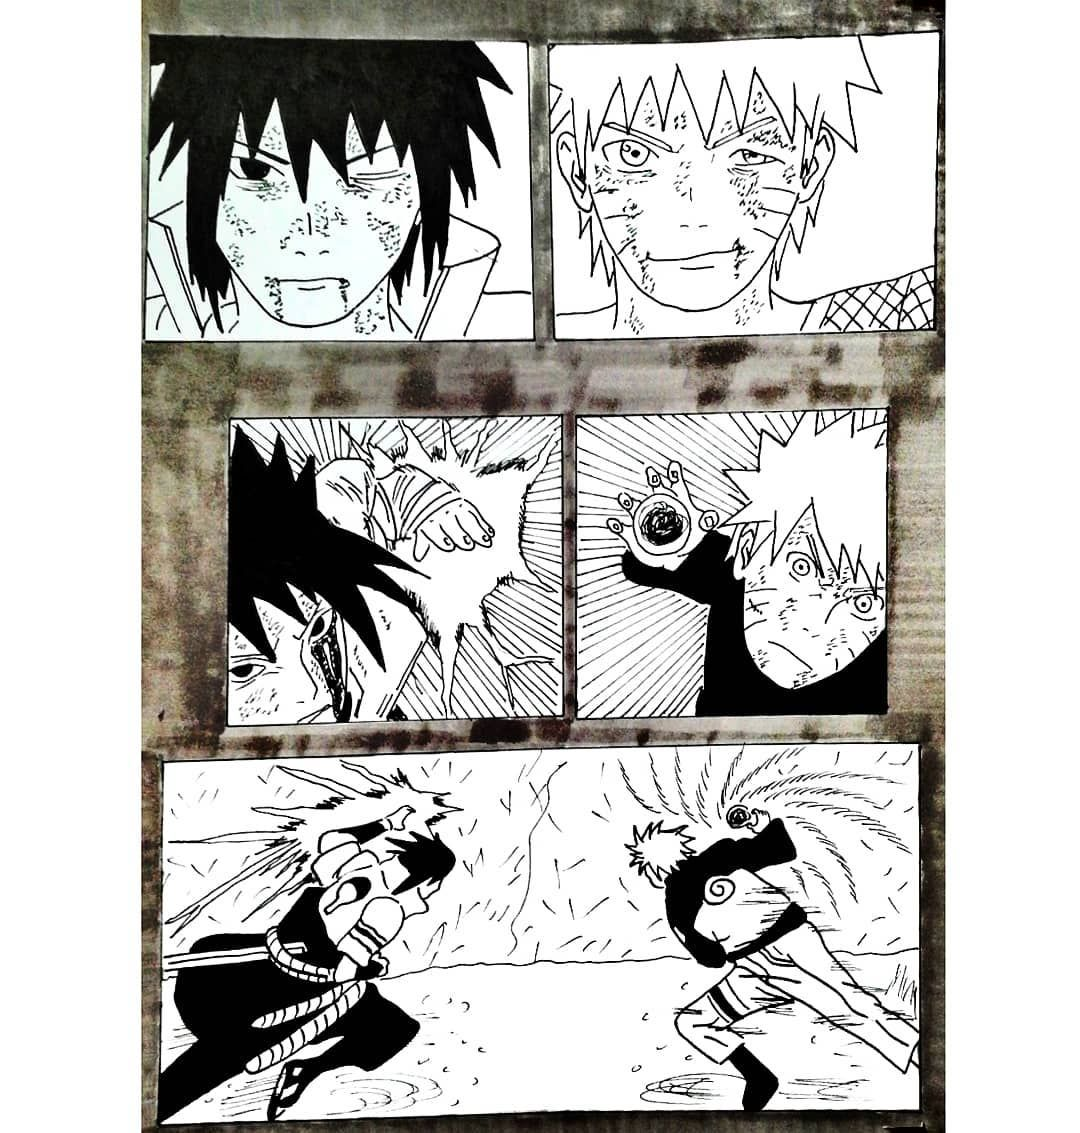 Naruto Vs Sasuke Final Battle One Of The Scenes You Requested Hope You Like It Follow For More Drawings Himanourii In 2020